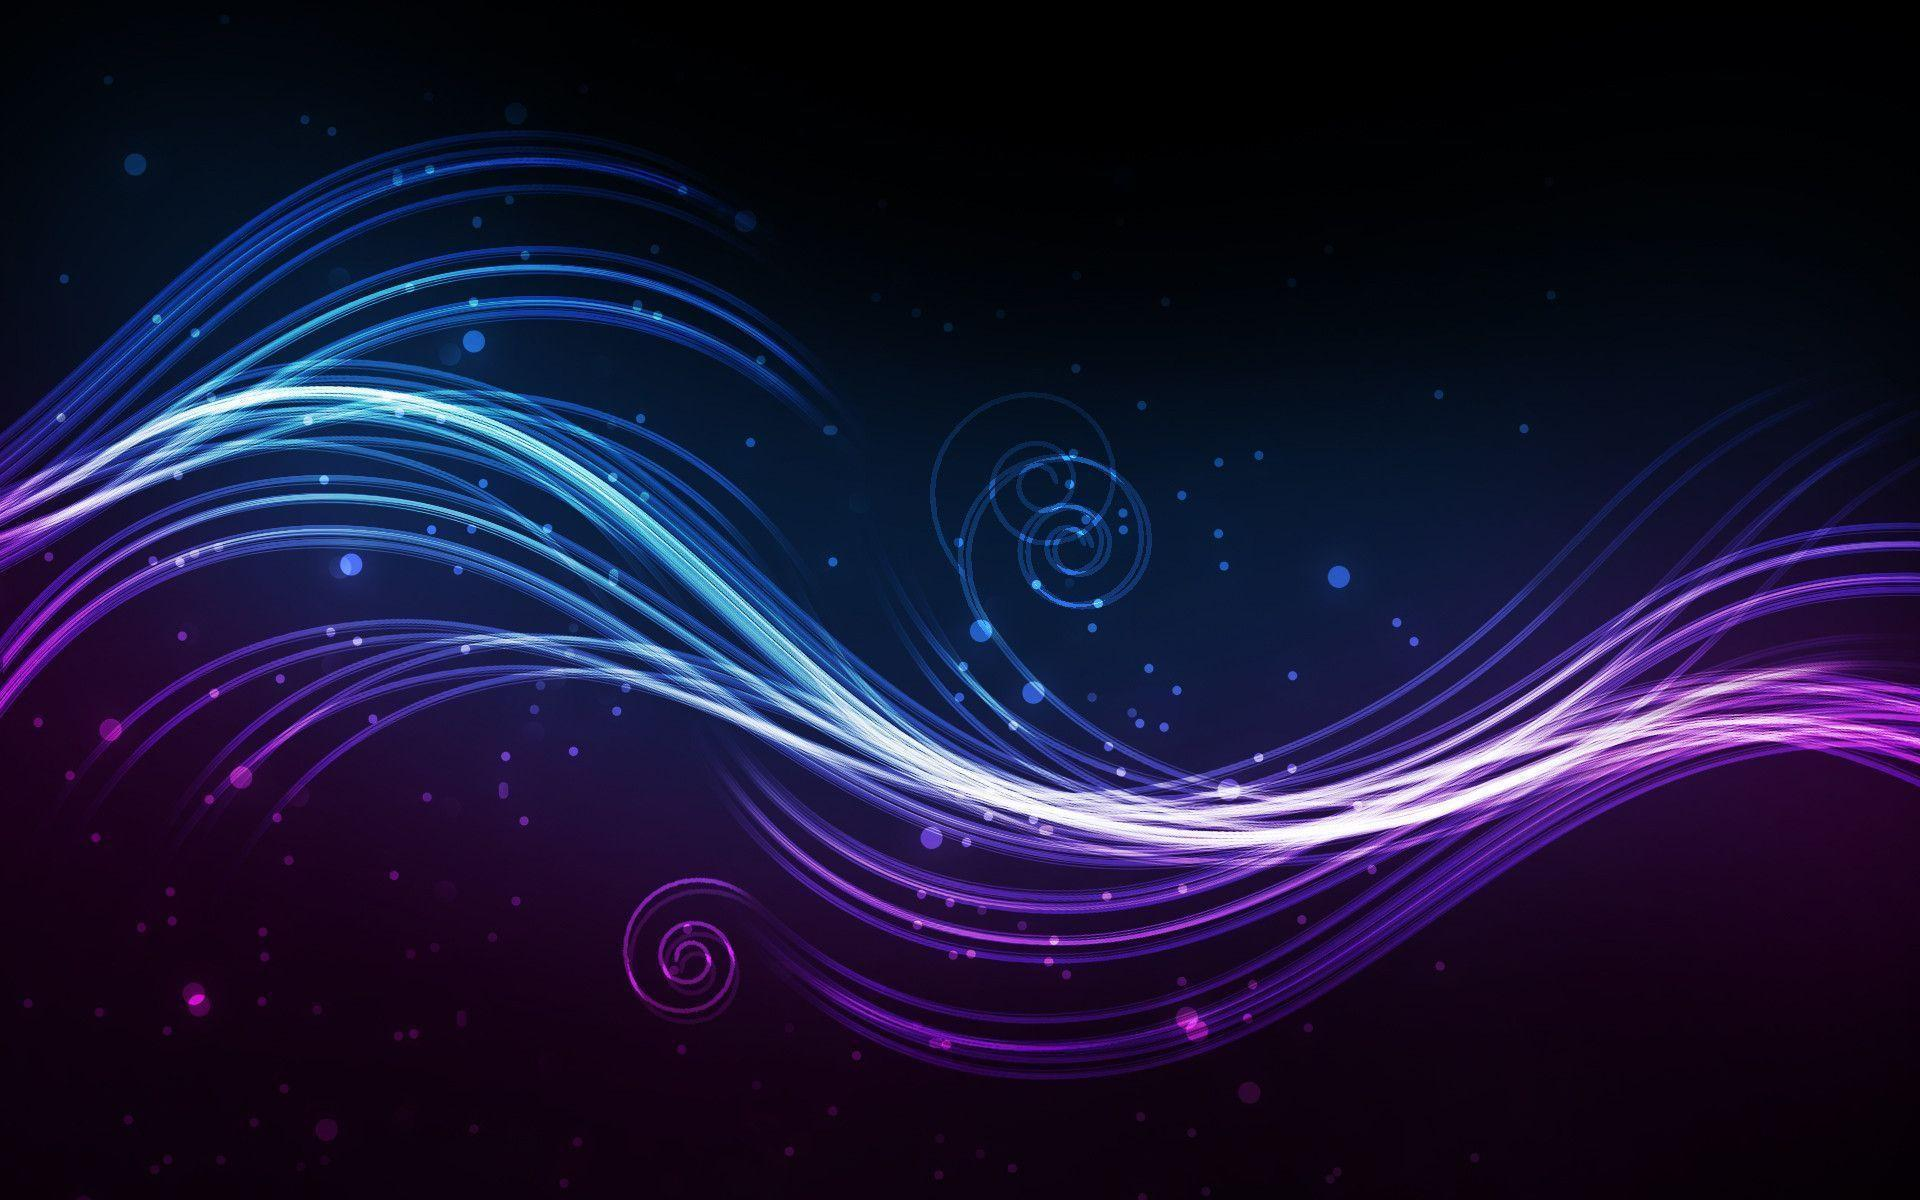 Black And Purple Abstract Widescreen Hd Wallpaper 512: Black And Blue Abstract Wallpapers